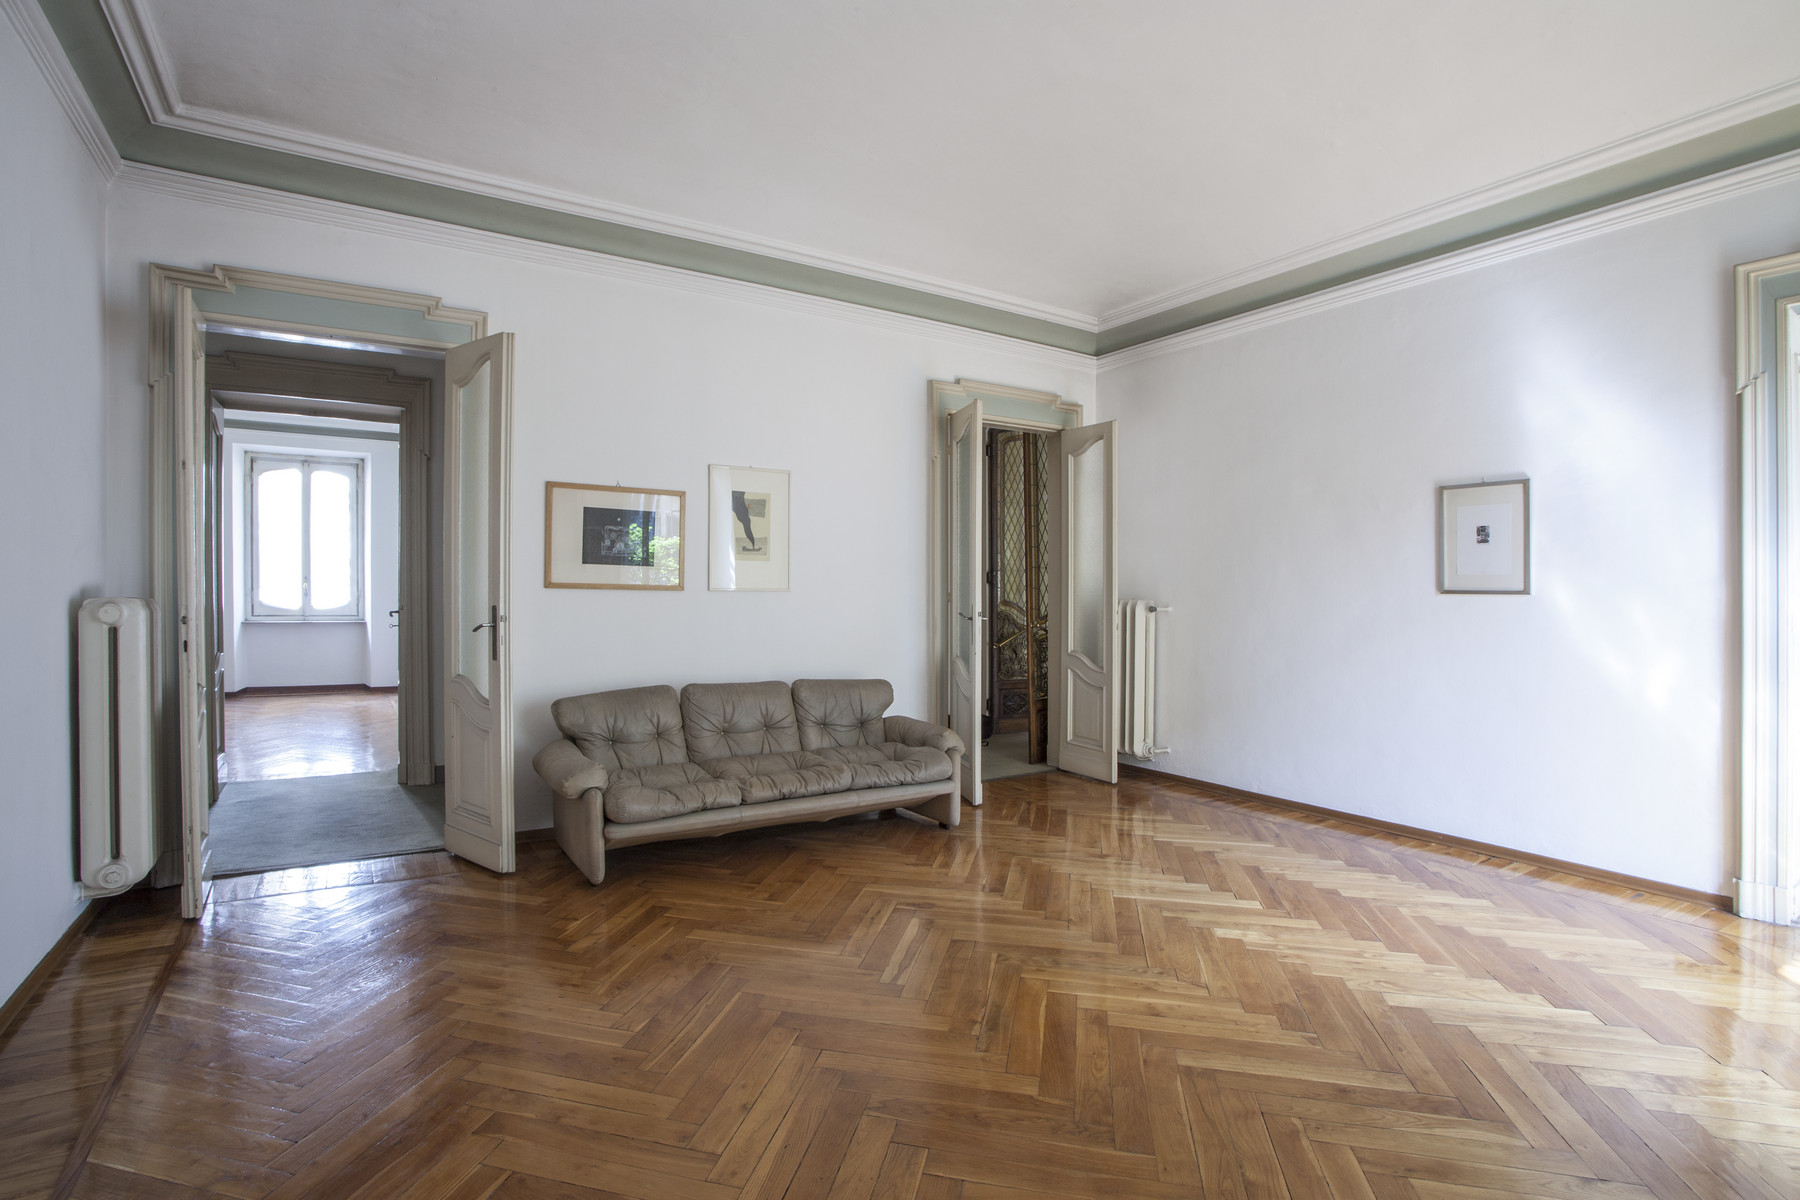 Additional photo for property listing at Exquisite apartment Art Nouveau style Via Duchessa Jolanda Torino, Turin 10138 Italy